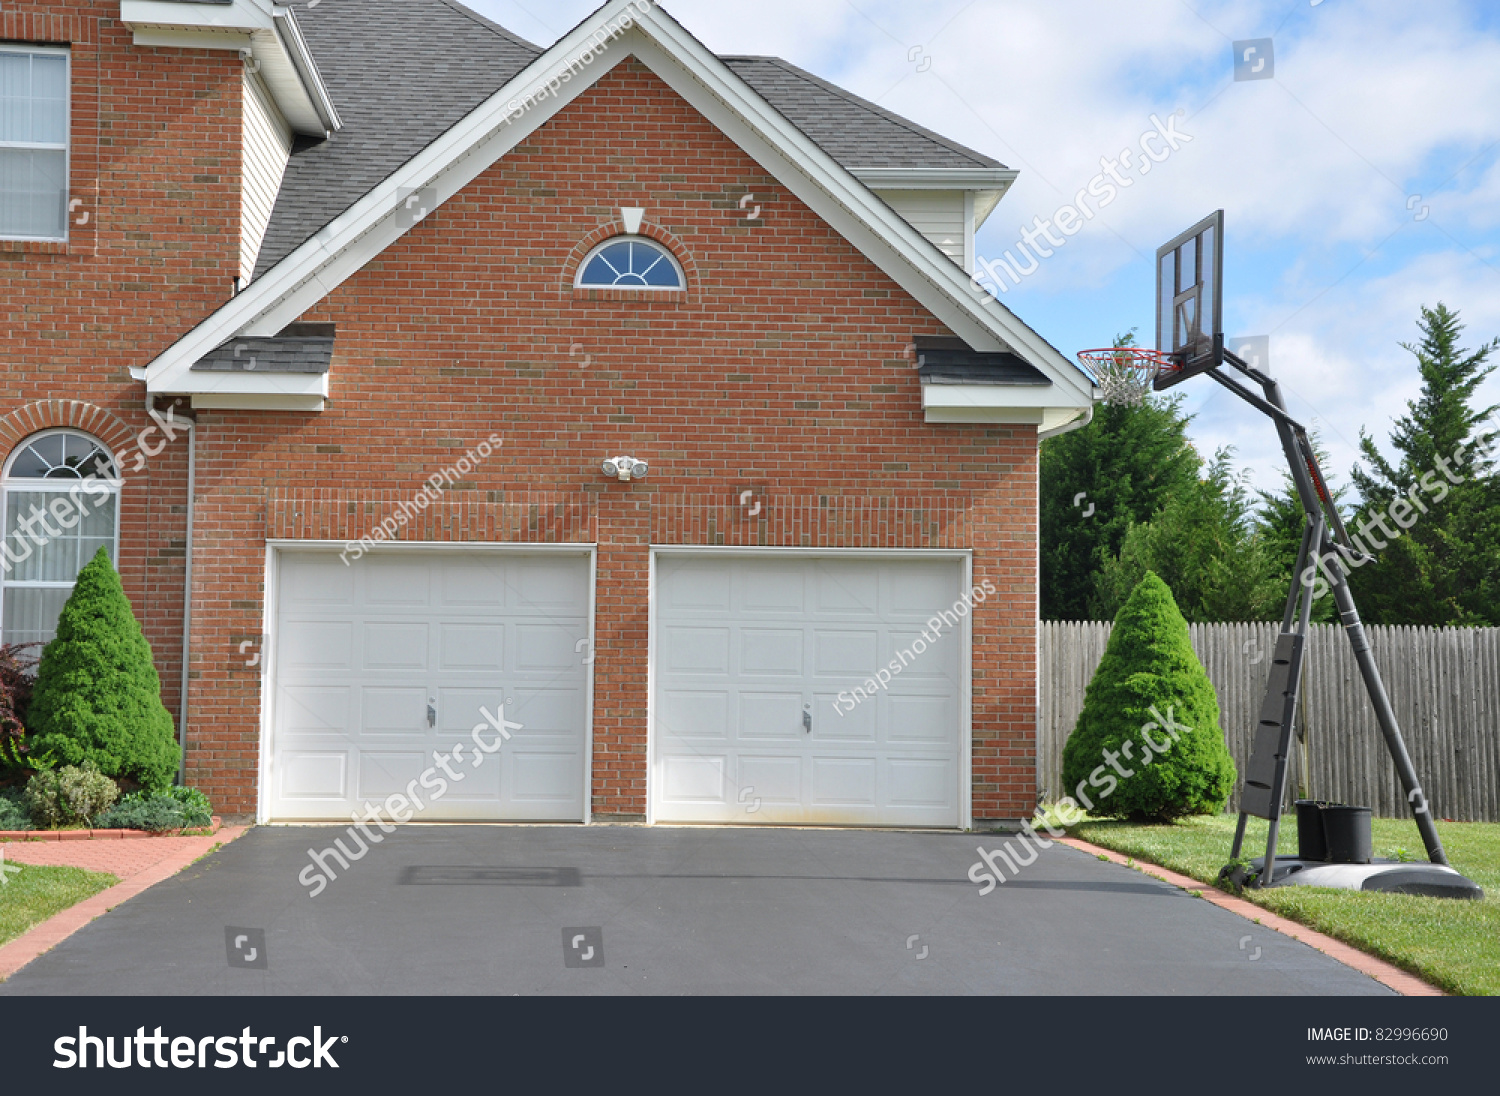 Basketball hoop on driveway front suburban stock photo for Basketball garage